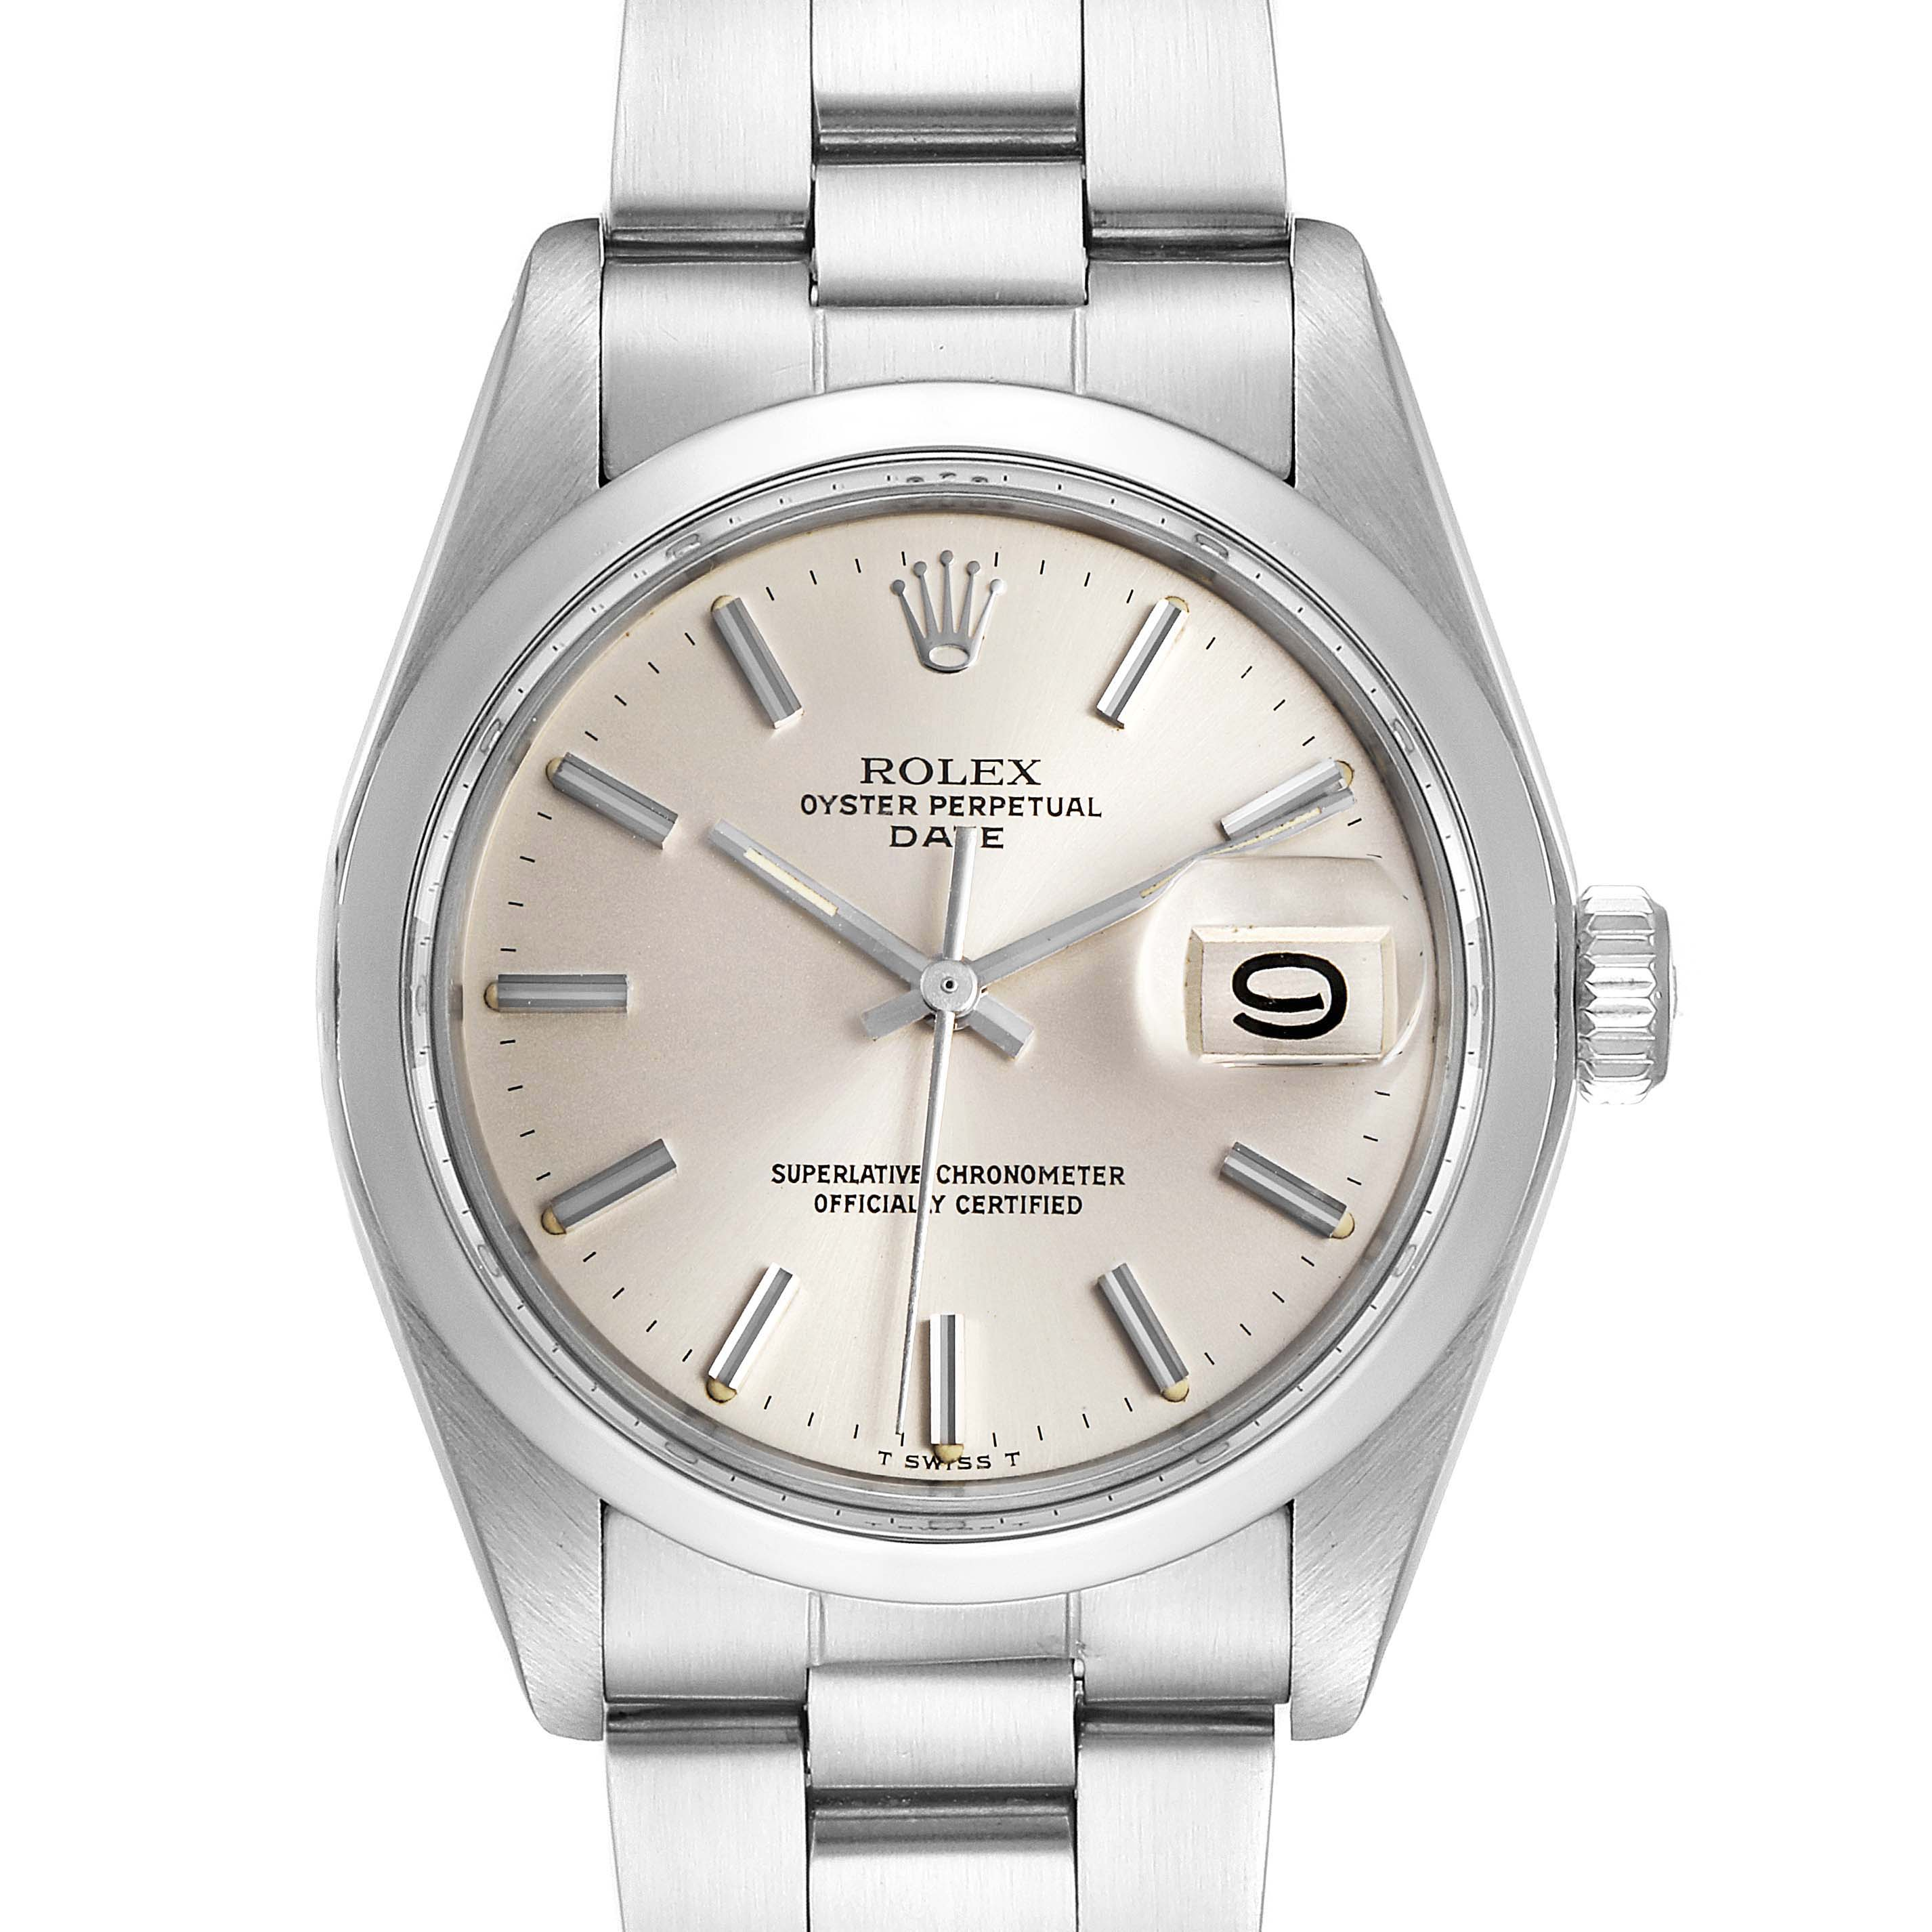 Photo of Rolex Date Silver Dial Domed Bezel Vintage Mens Watch 1500 Papers